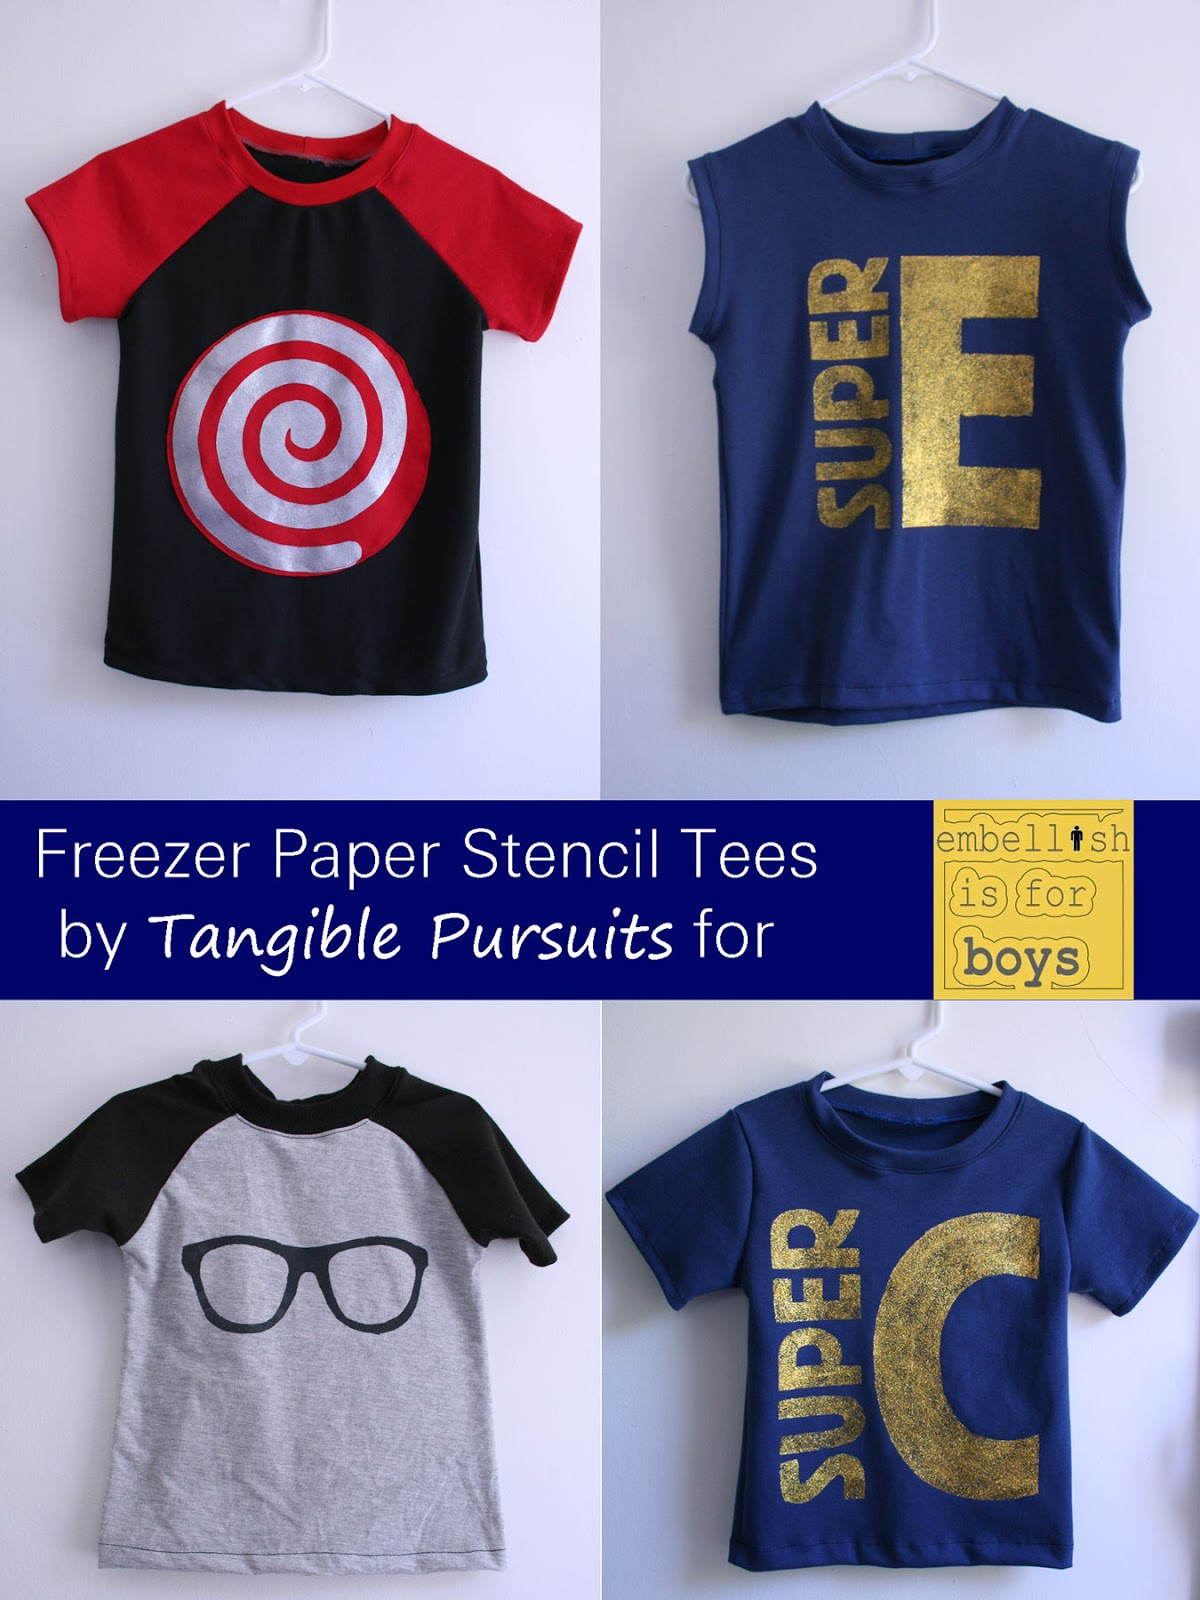 Freezer Paper Stencil Tees by Tangible Pursuits for Embellish is for Boys